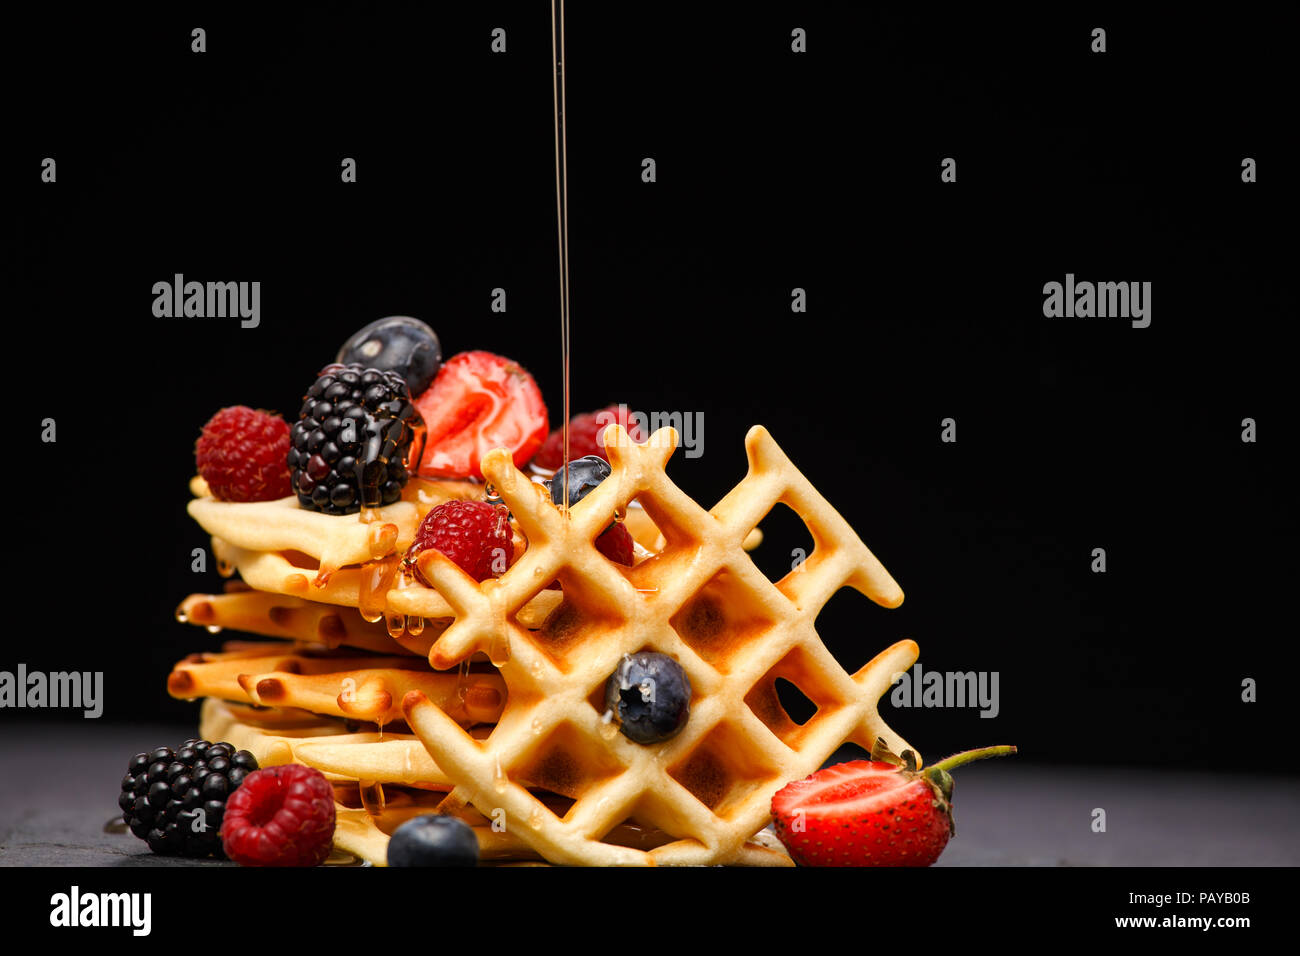 Photo of viennese wafers with berries pouring honey on black empty background - Stock Image